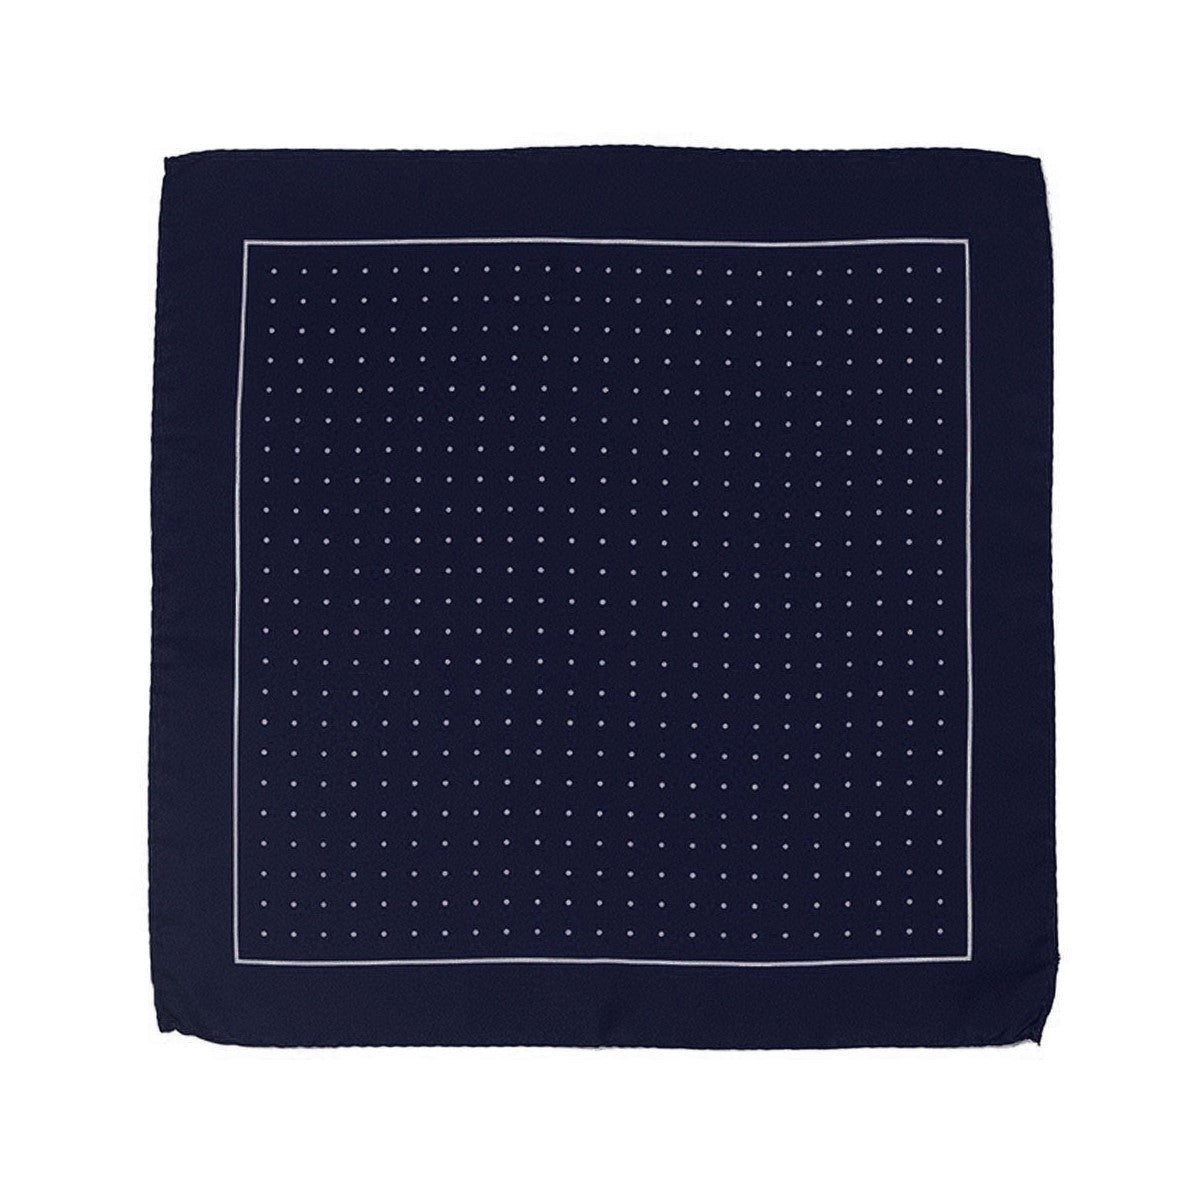 Blue Silk Pocket Square Le Gentilhomme et la Mer